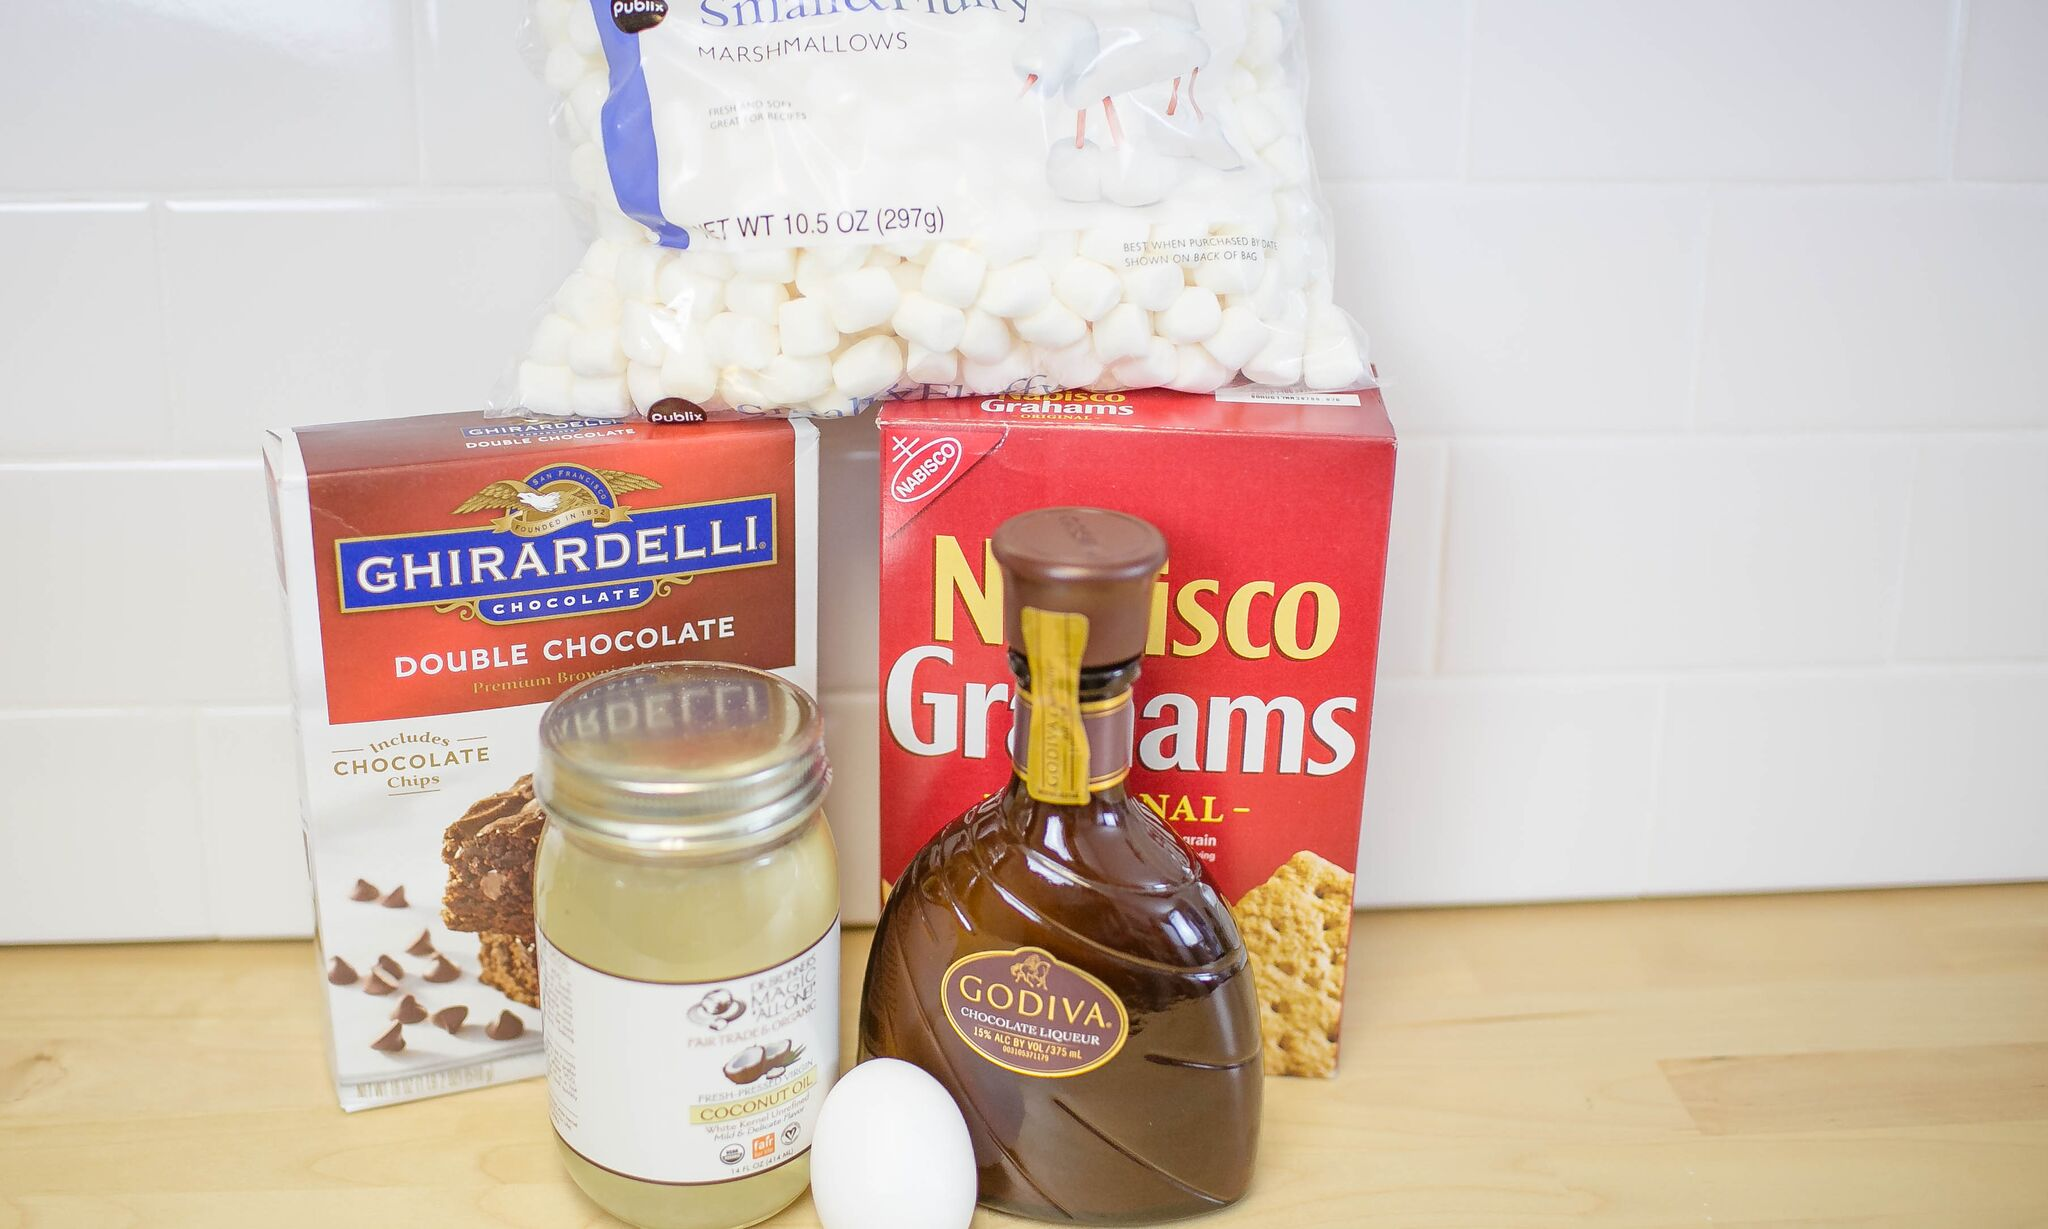 Assemble your ingredients for the brownie s'mores: brownie mix, one egg, Godiva liquor, coconut oil, mini marshmallows, and graham crackers.